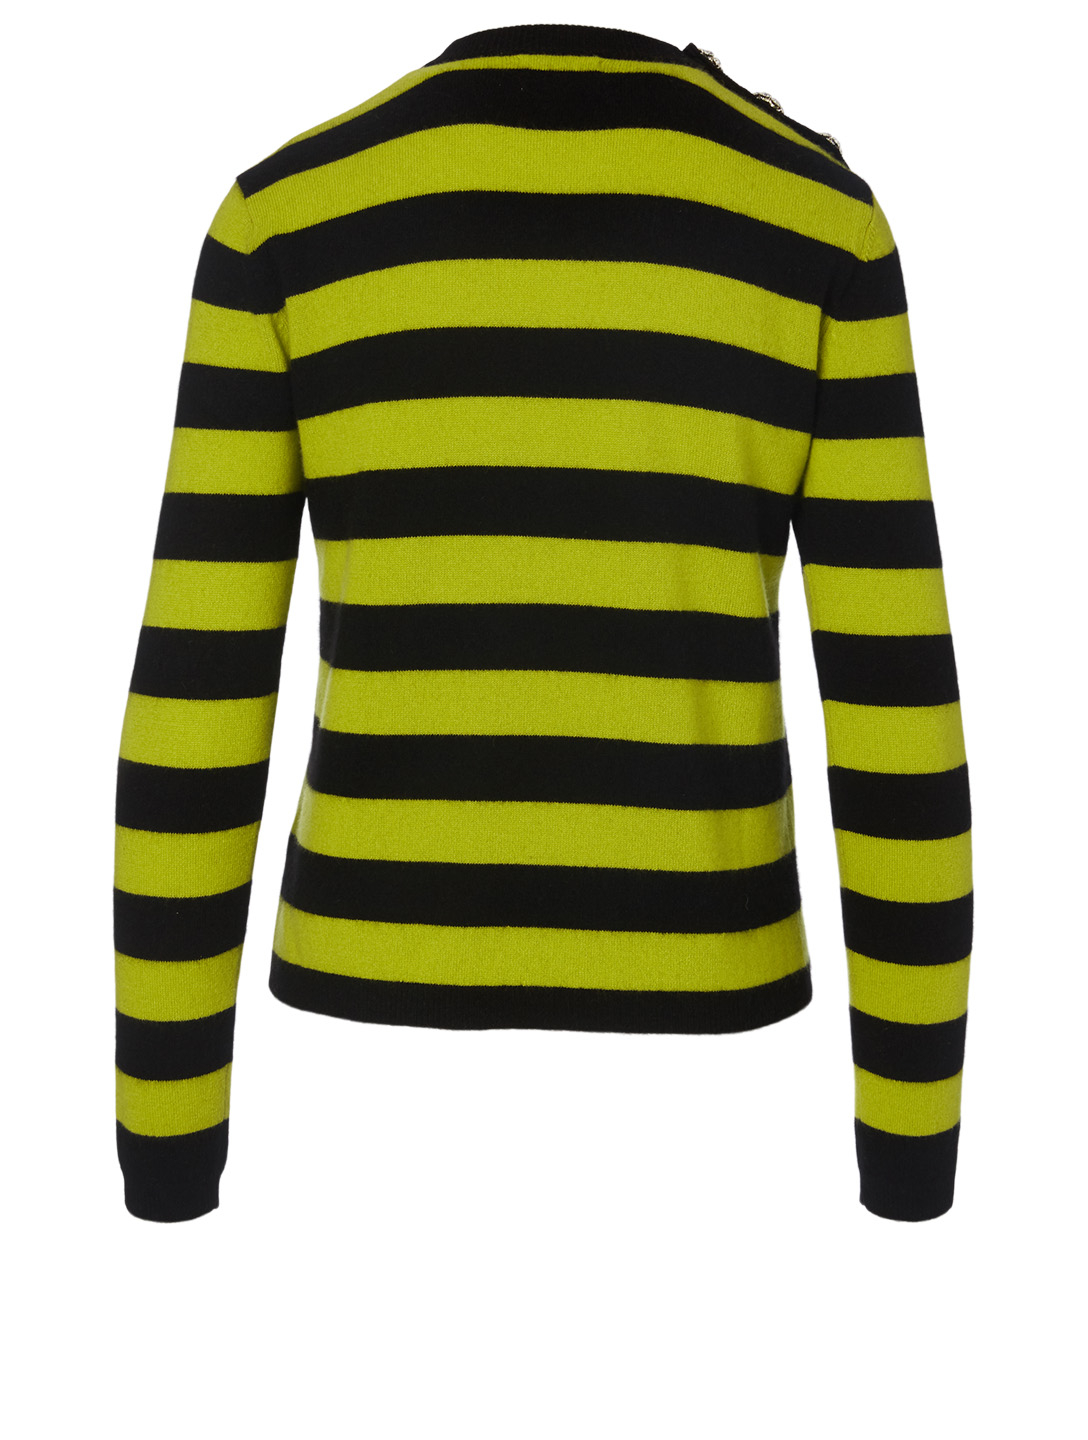 GANNI Cashmere Sweater in Stripe Print Women's Yellow